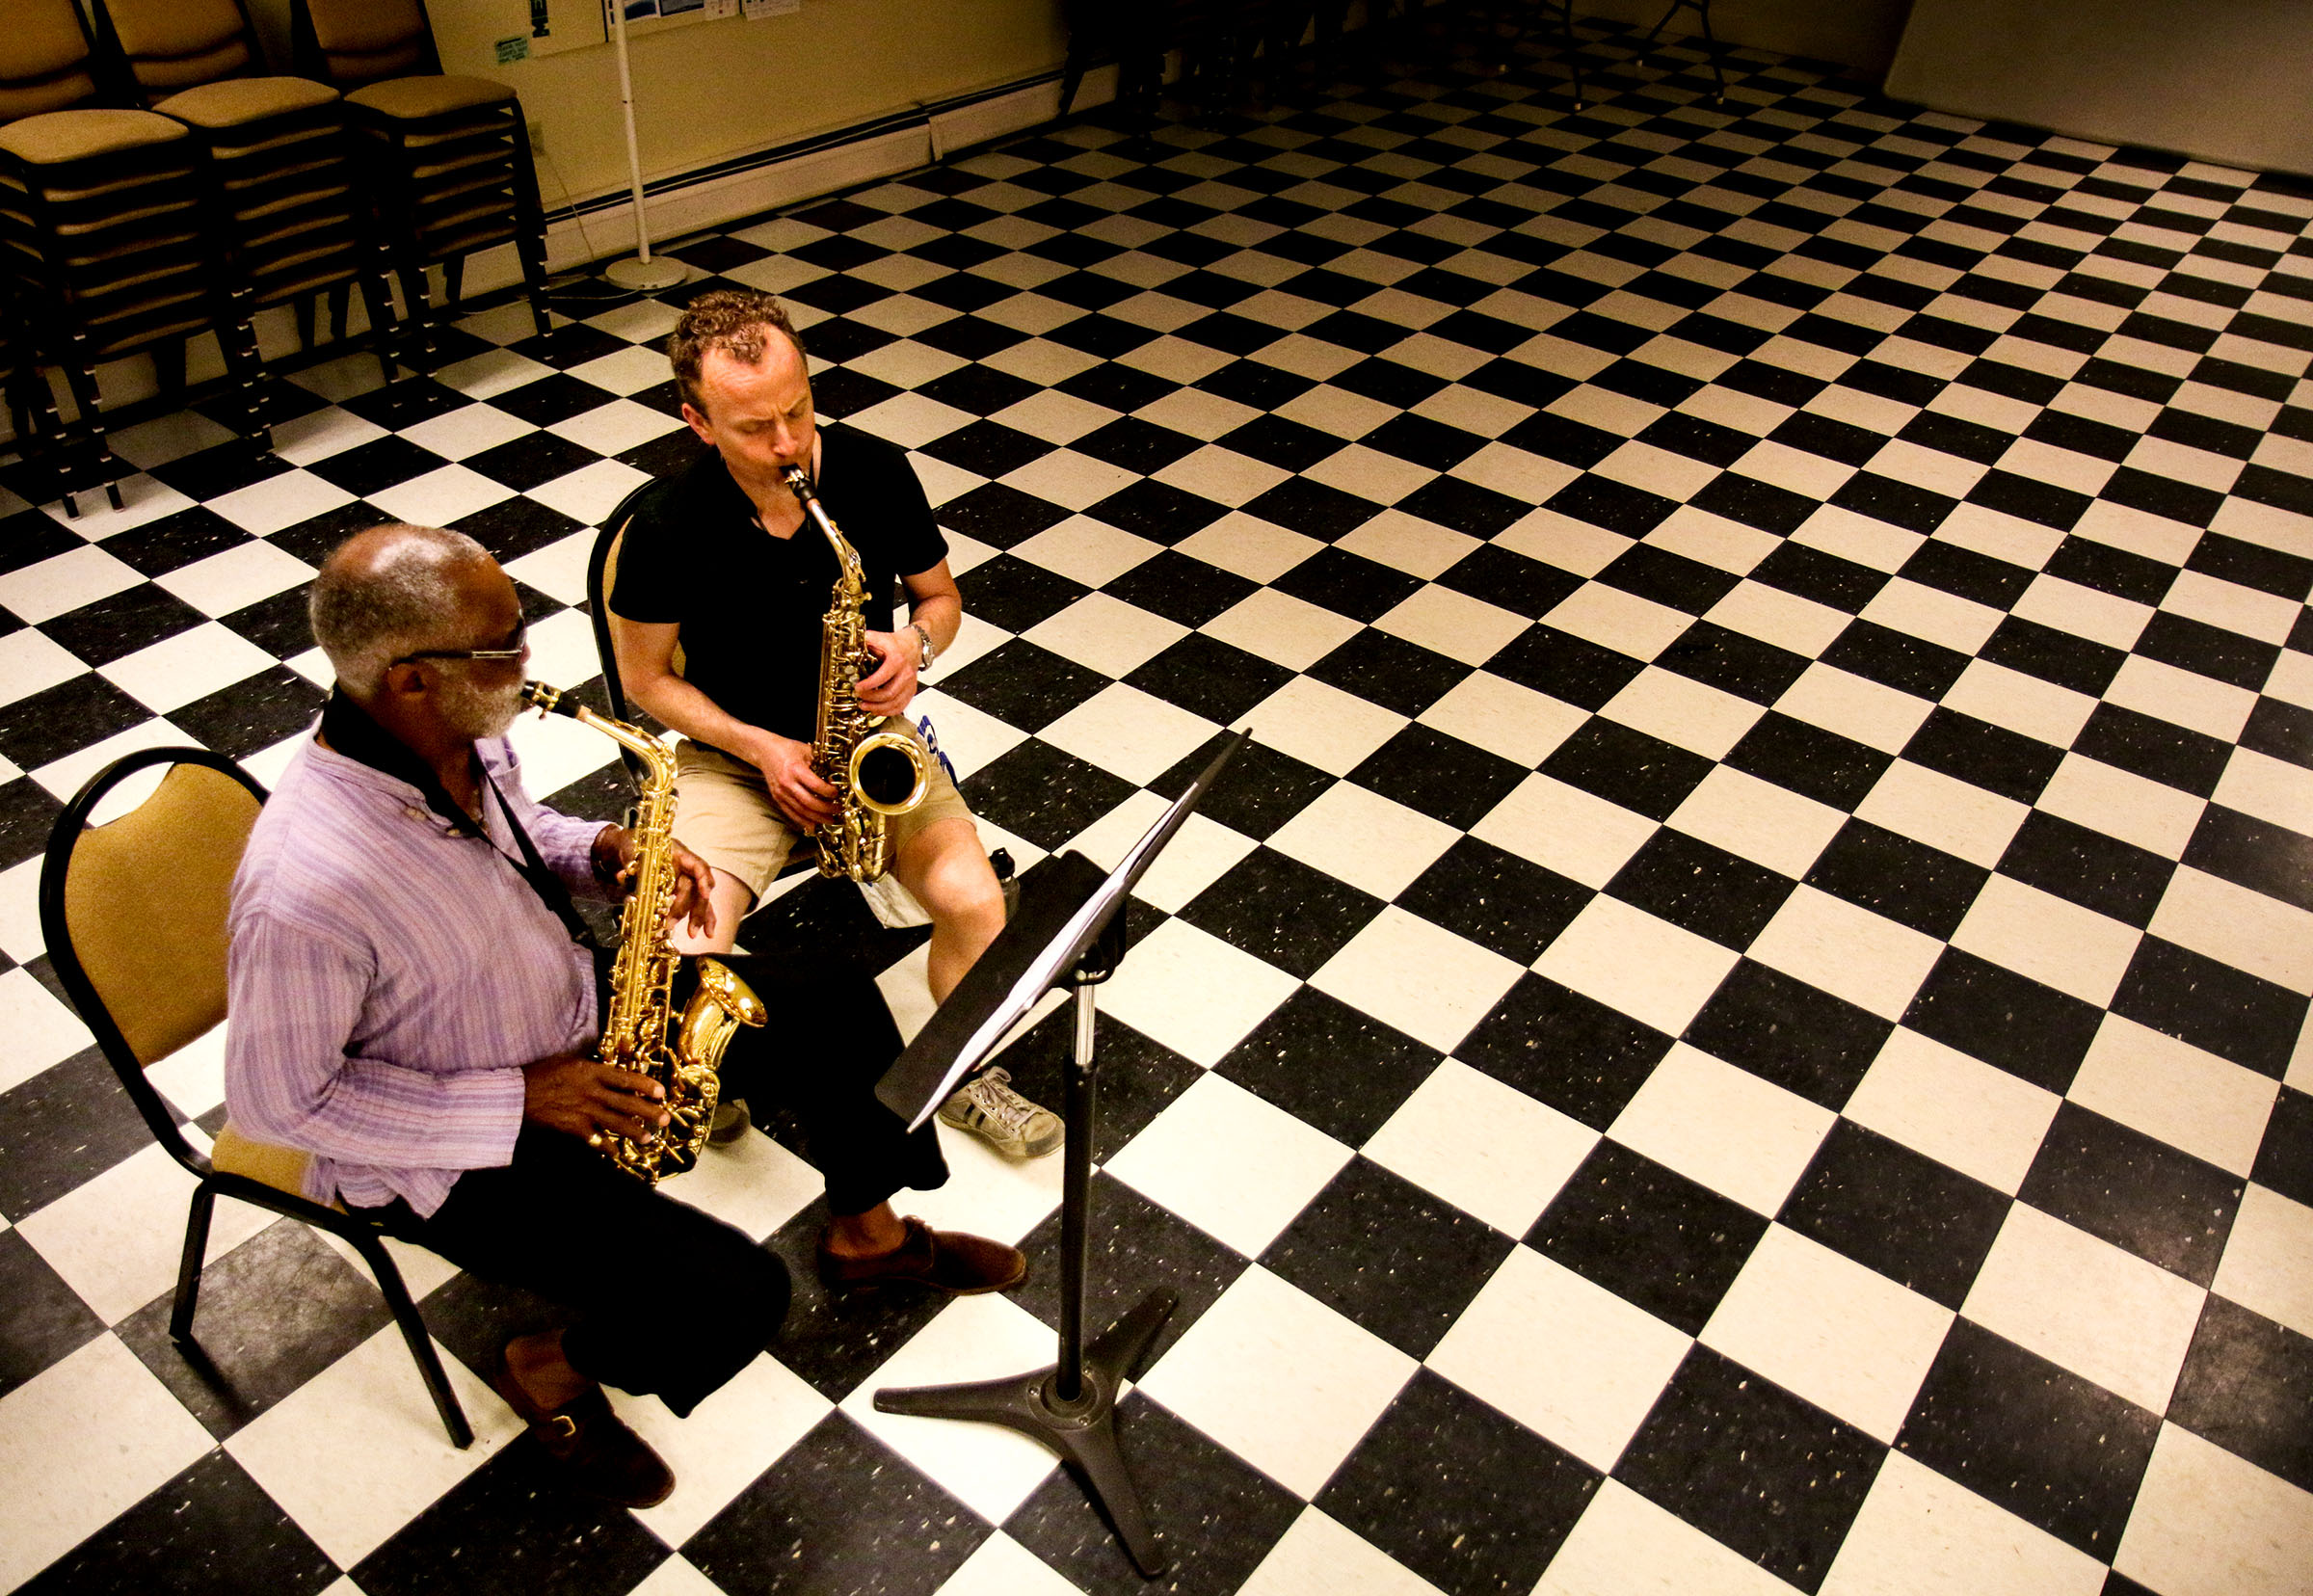 """Mendon, Vt., resident Al Wakefield, left, takes a lesson from Dartmouth classical saxophone lecturer Michael Zsoldos, of Woodstock, Vt., at The North Chapel in Woodstock on Wednesday, July 11, 2018. Wakefield was one of 70 students Interplay Jazz brought together for a summer program, and he is now applying the basics he learned there. After a life as a """"corporate guy,"""" music functions as a way for Wakefield to get his emotions out. """"At this stage in my life, it brings me great joy,"""" Wakefield said."""